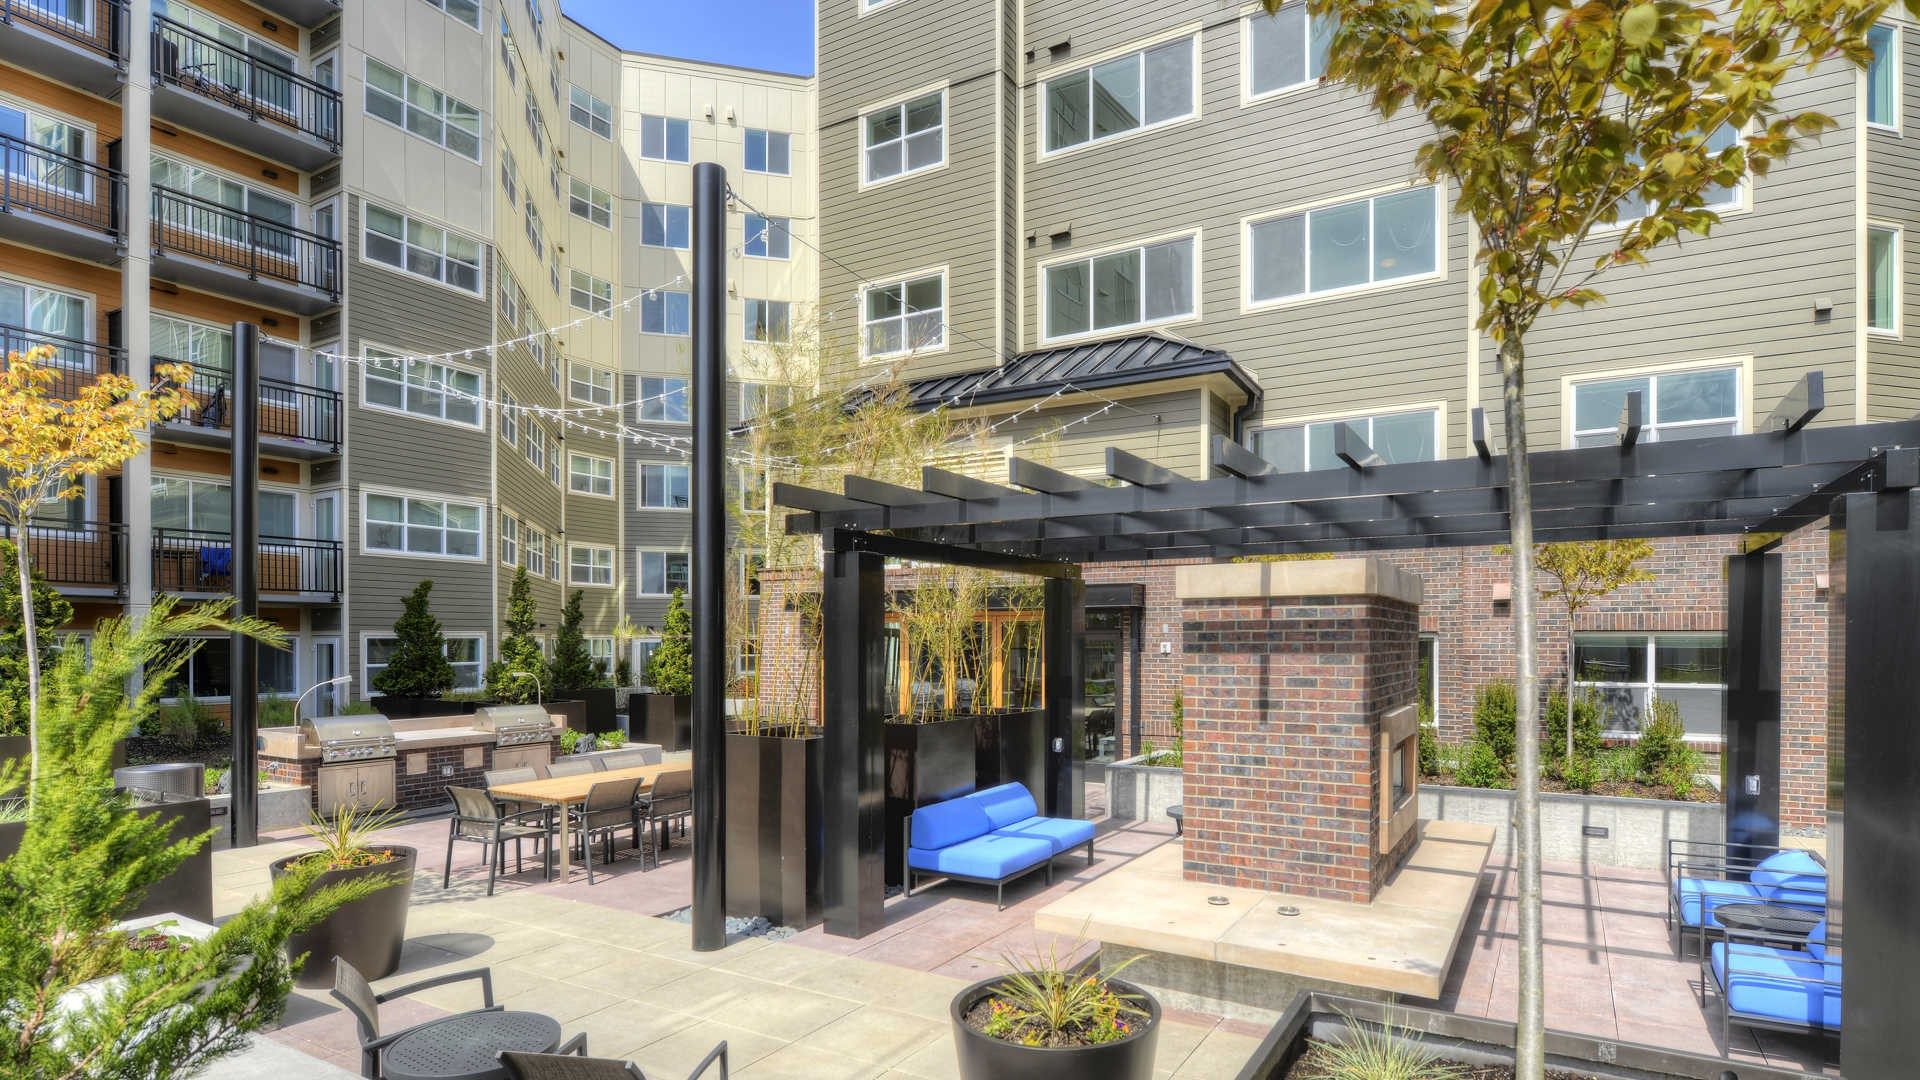 2410 northwest 57th street 2 seattle wa 98107 1 - 1 bedroom apartments in seattle washington ...